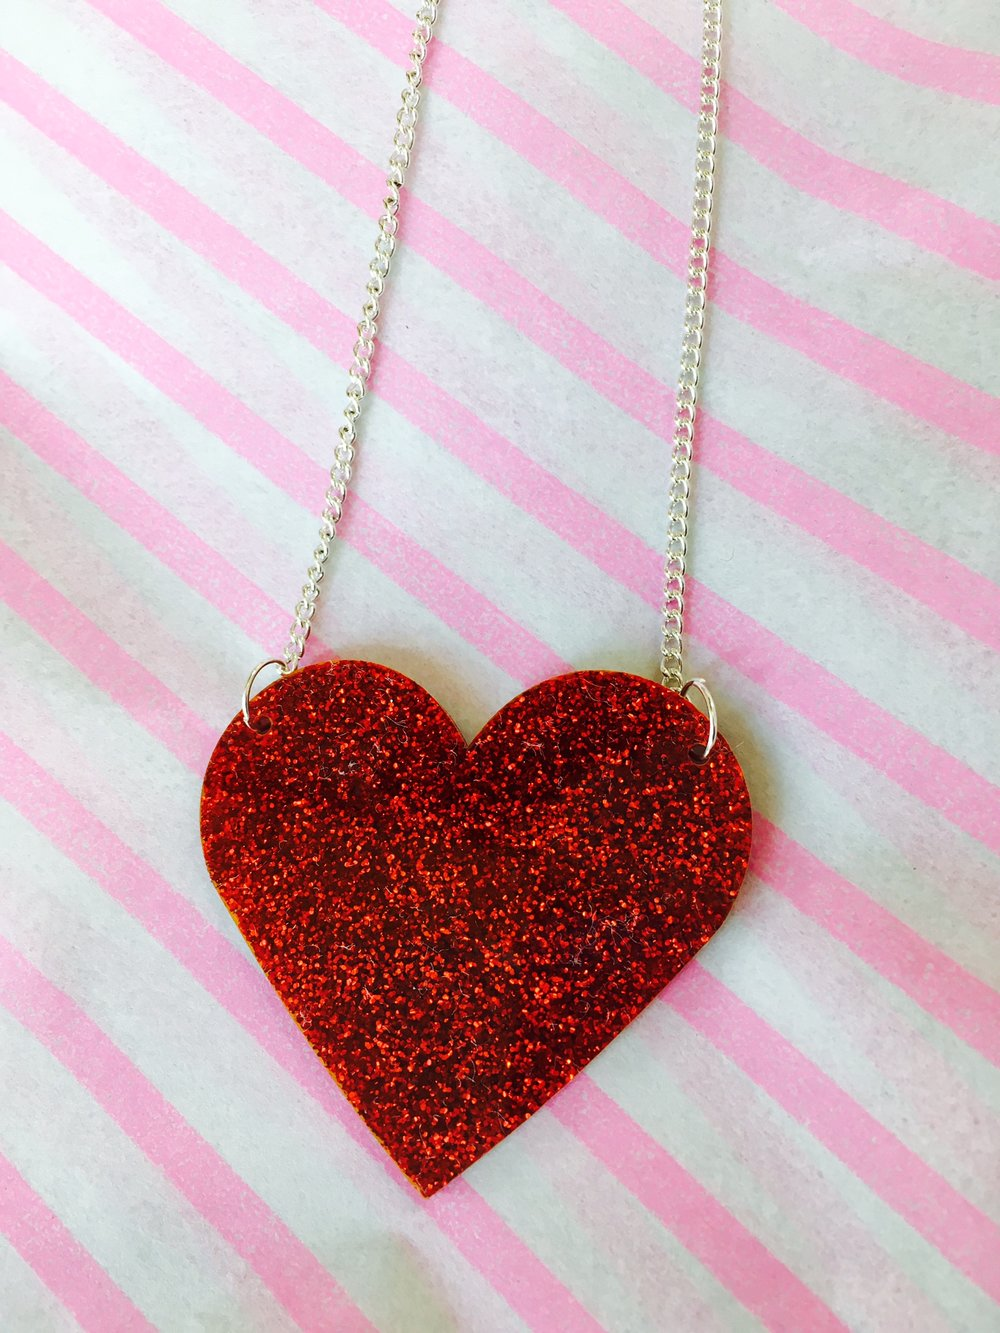 Glitter Red Acrylic Heart Necklace - Handmade in Hackney, London by From Nic Love // £35 (also available in Blue)